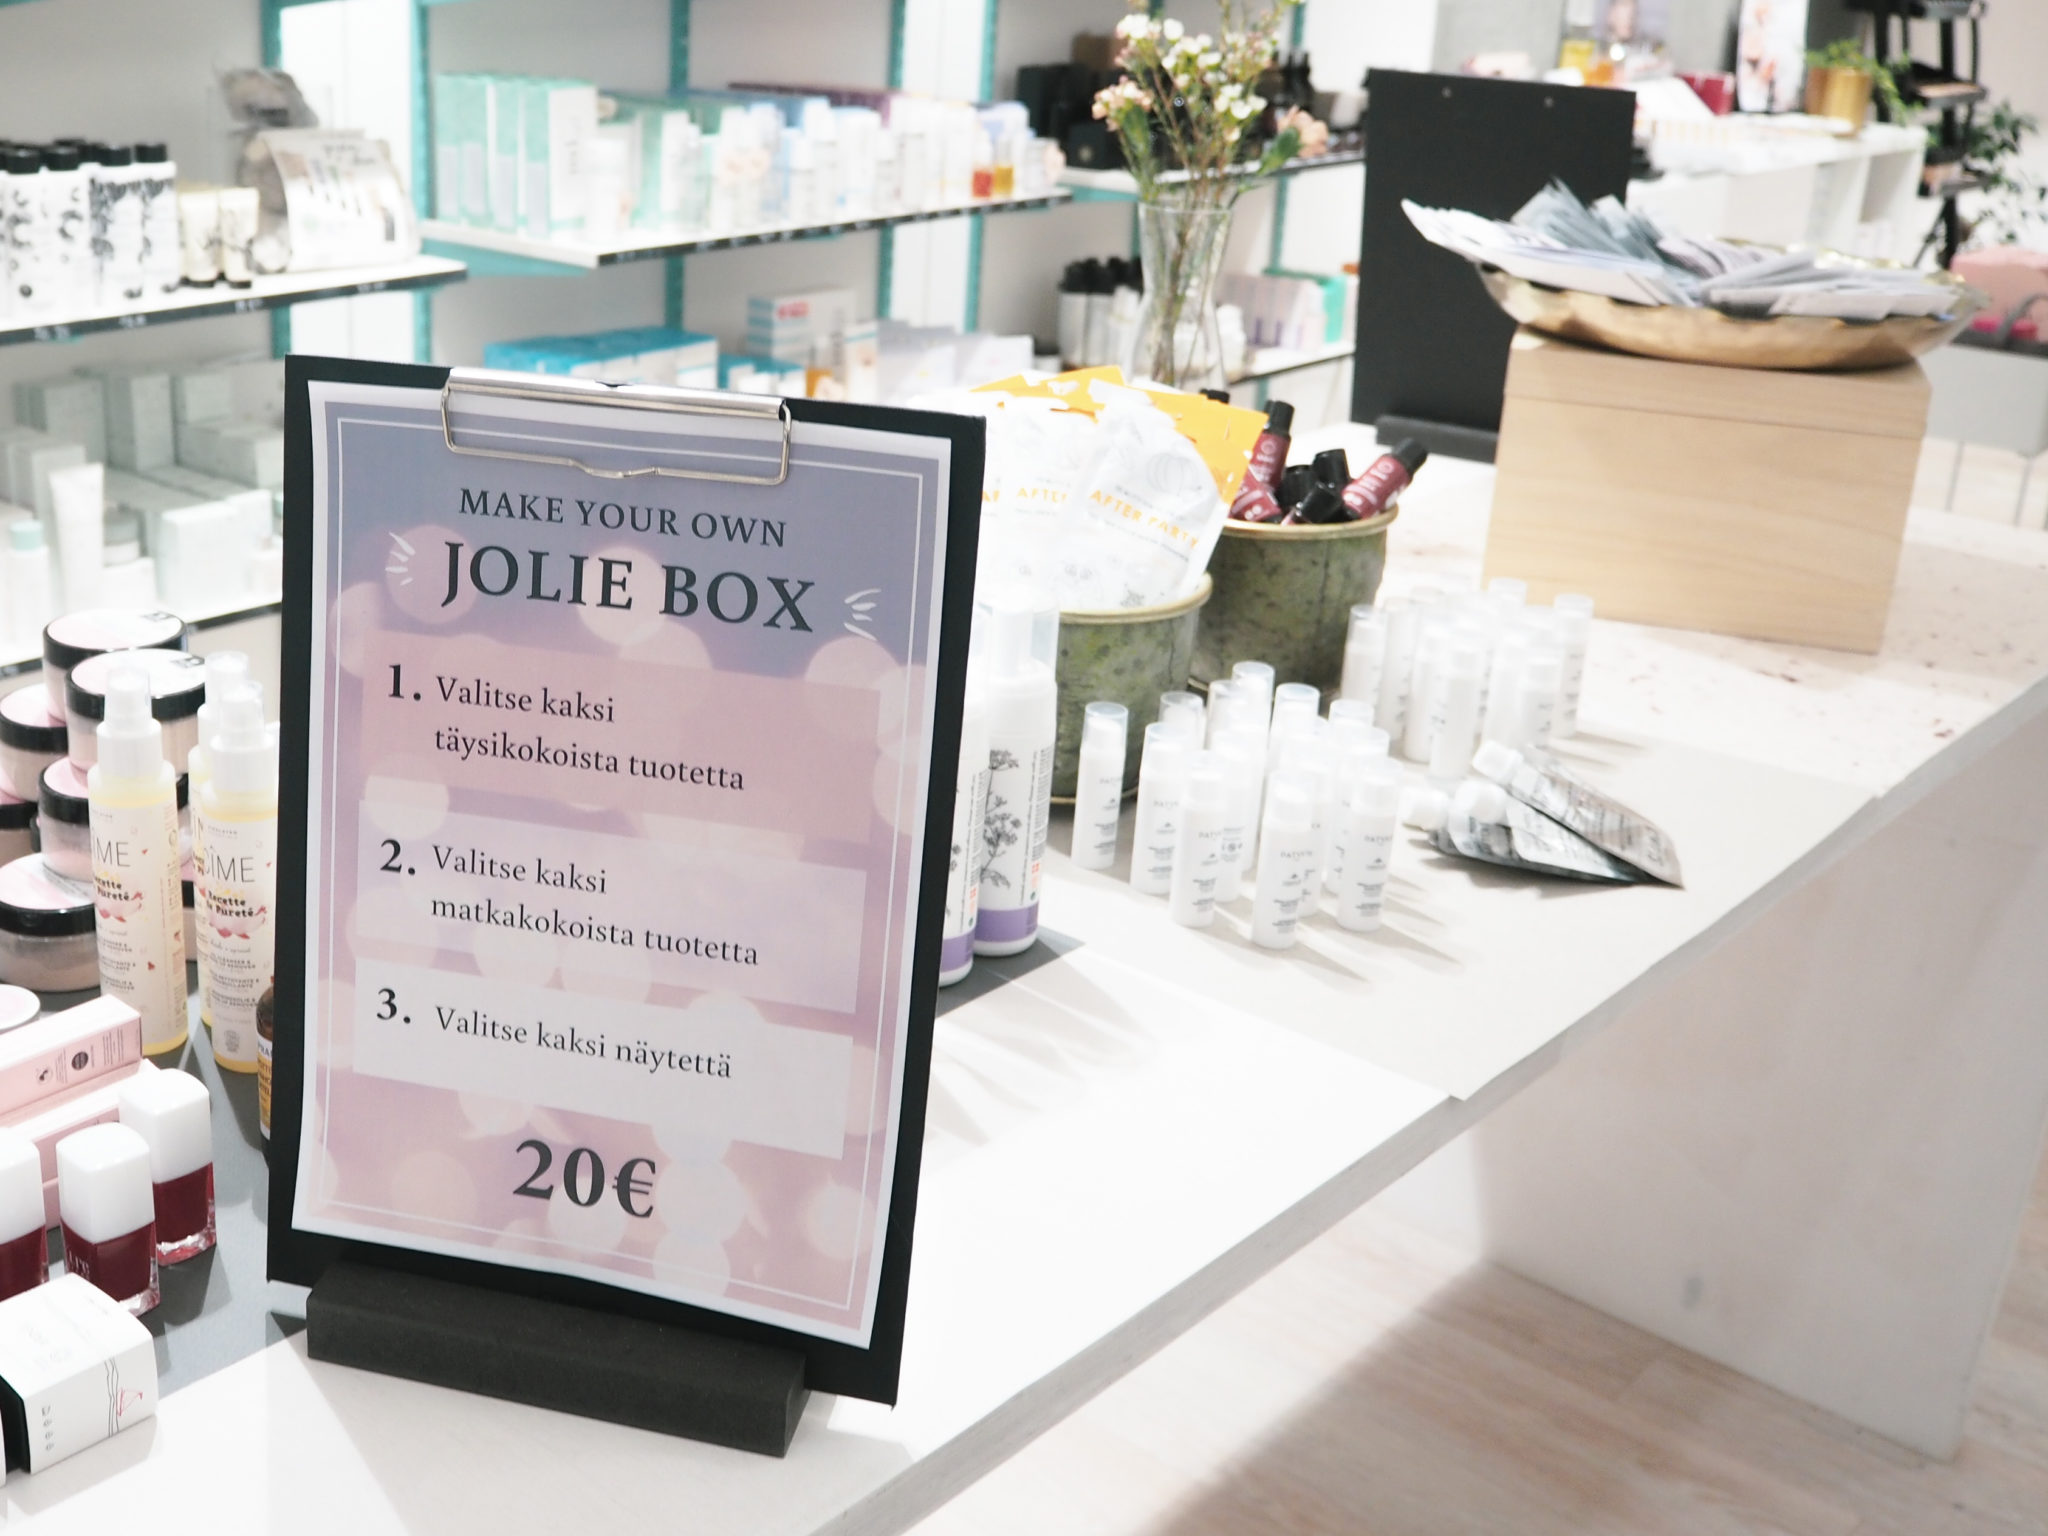 Make Your Own Jolie Box